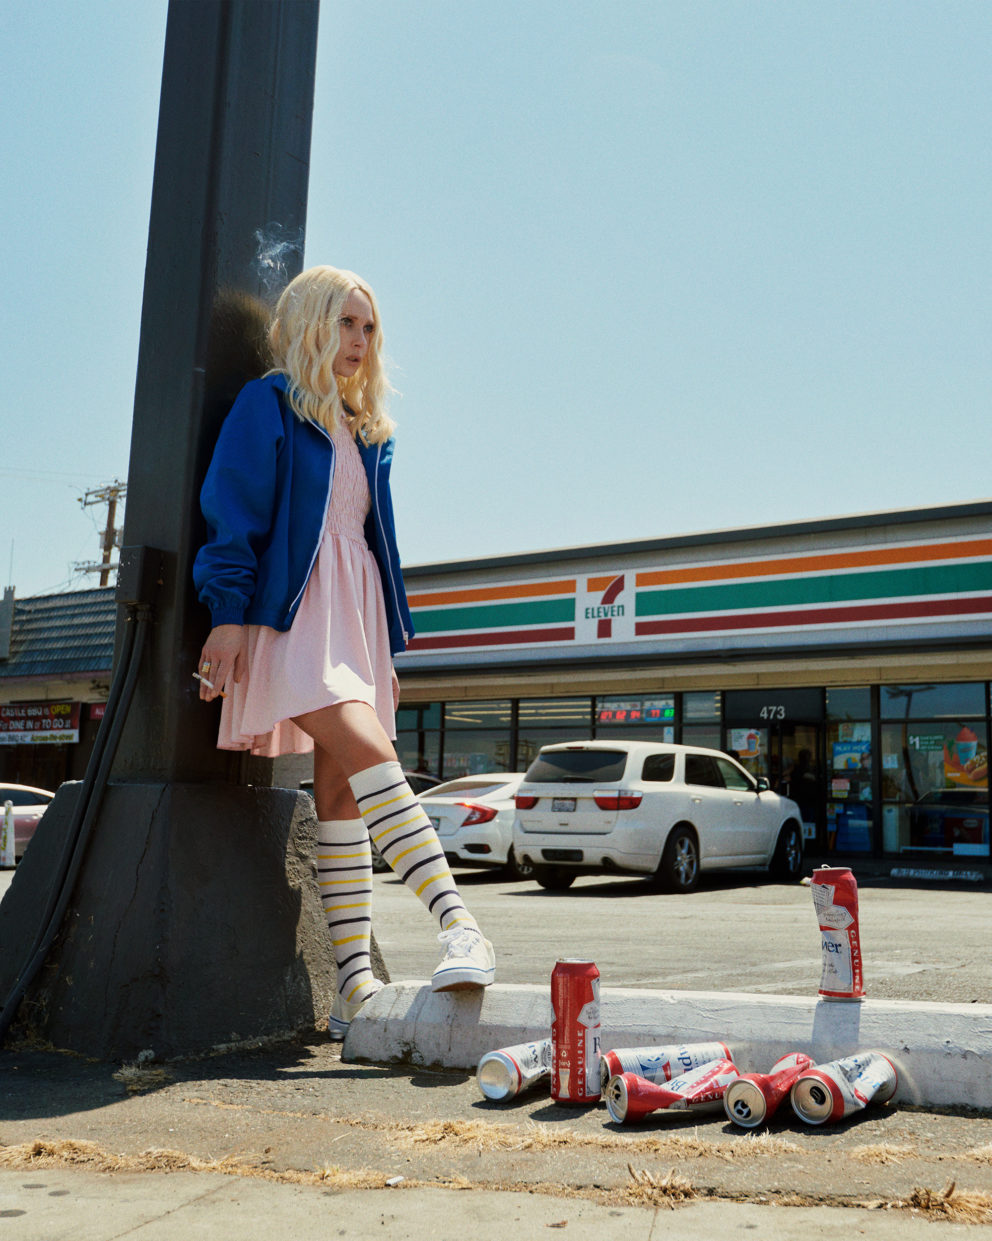 210709 999 Nd850 Wmag Tv Portfolio Juno Temple 093 By Christian Hogstedt